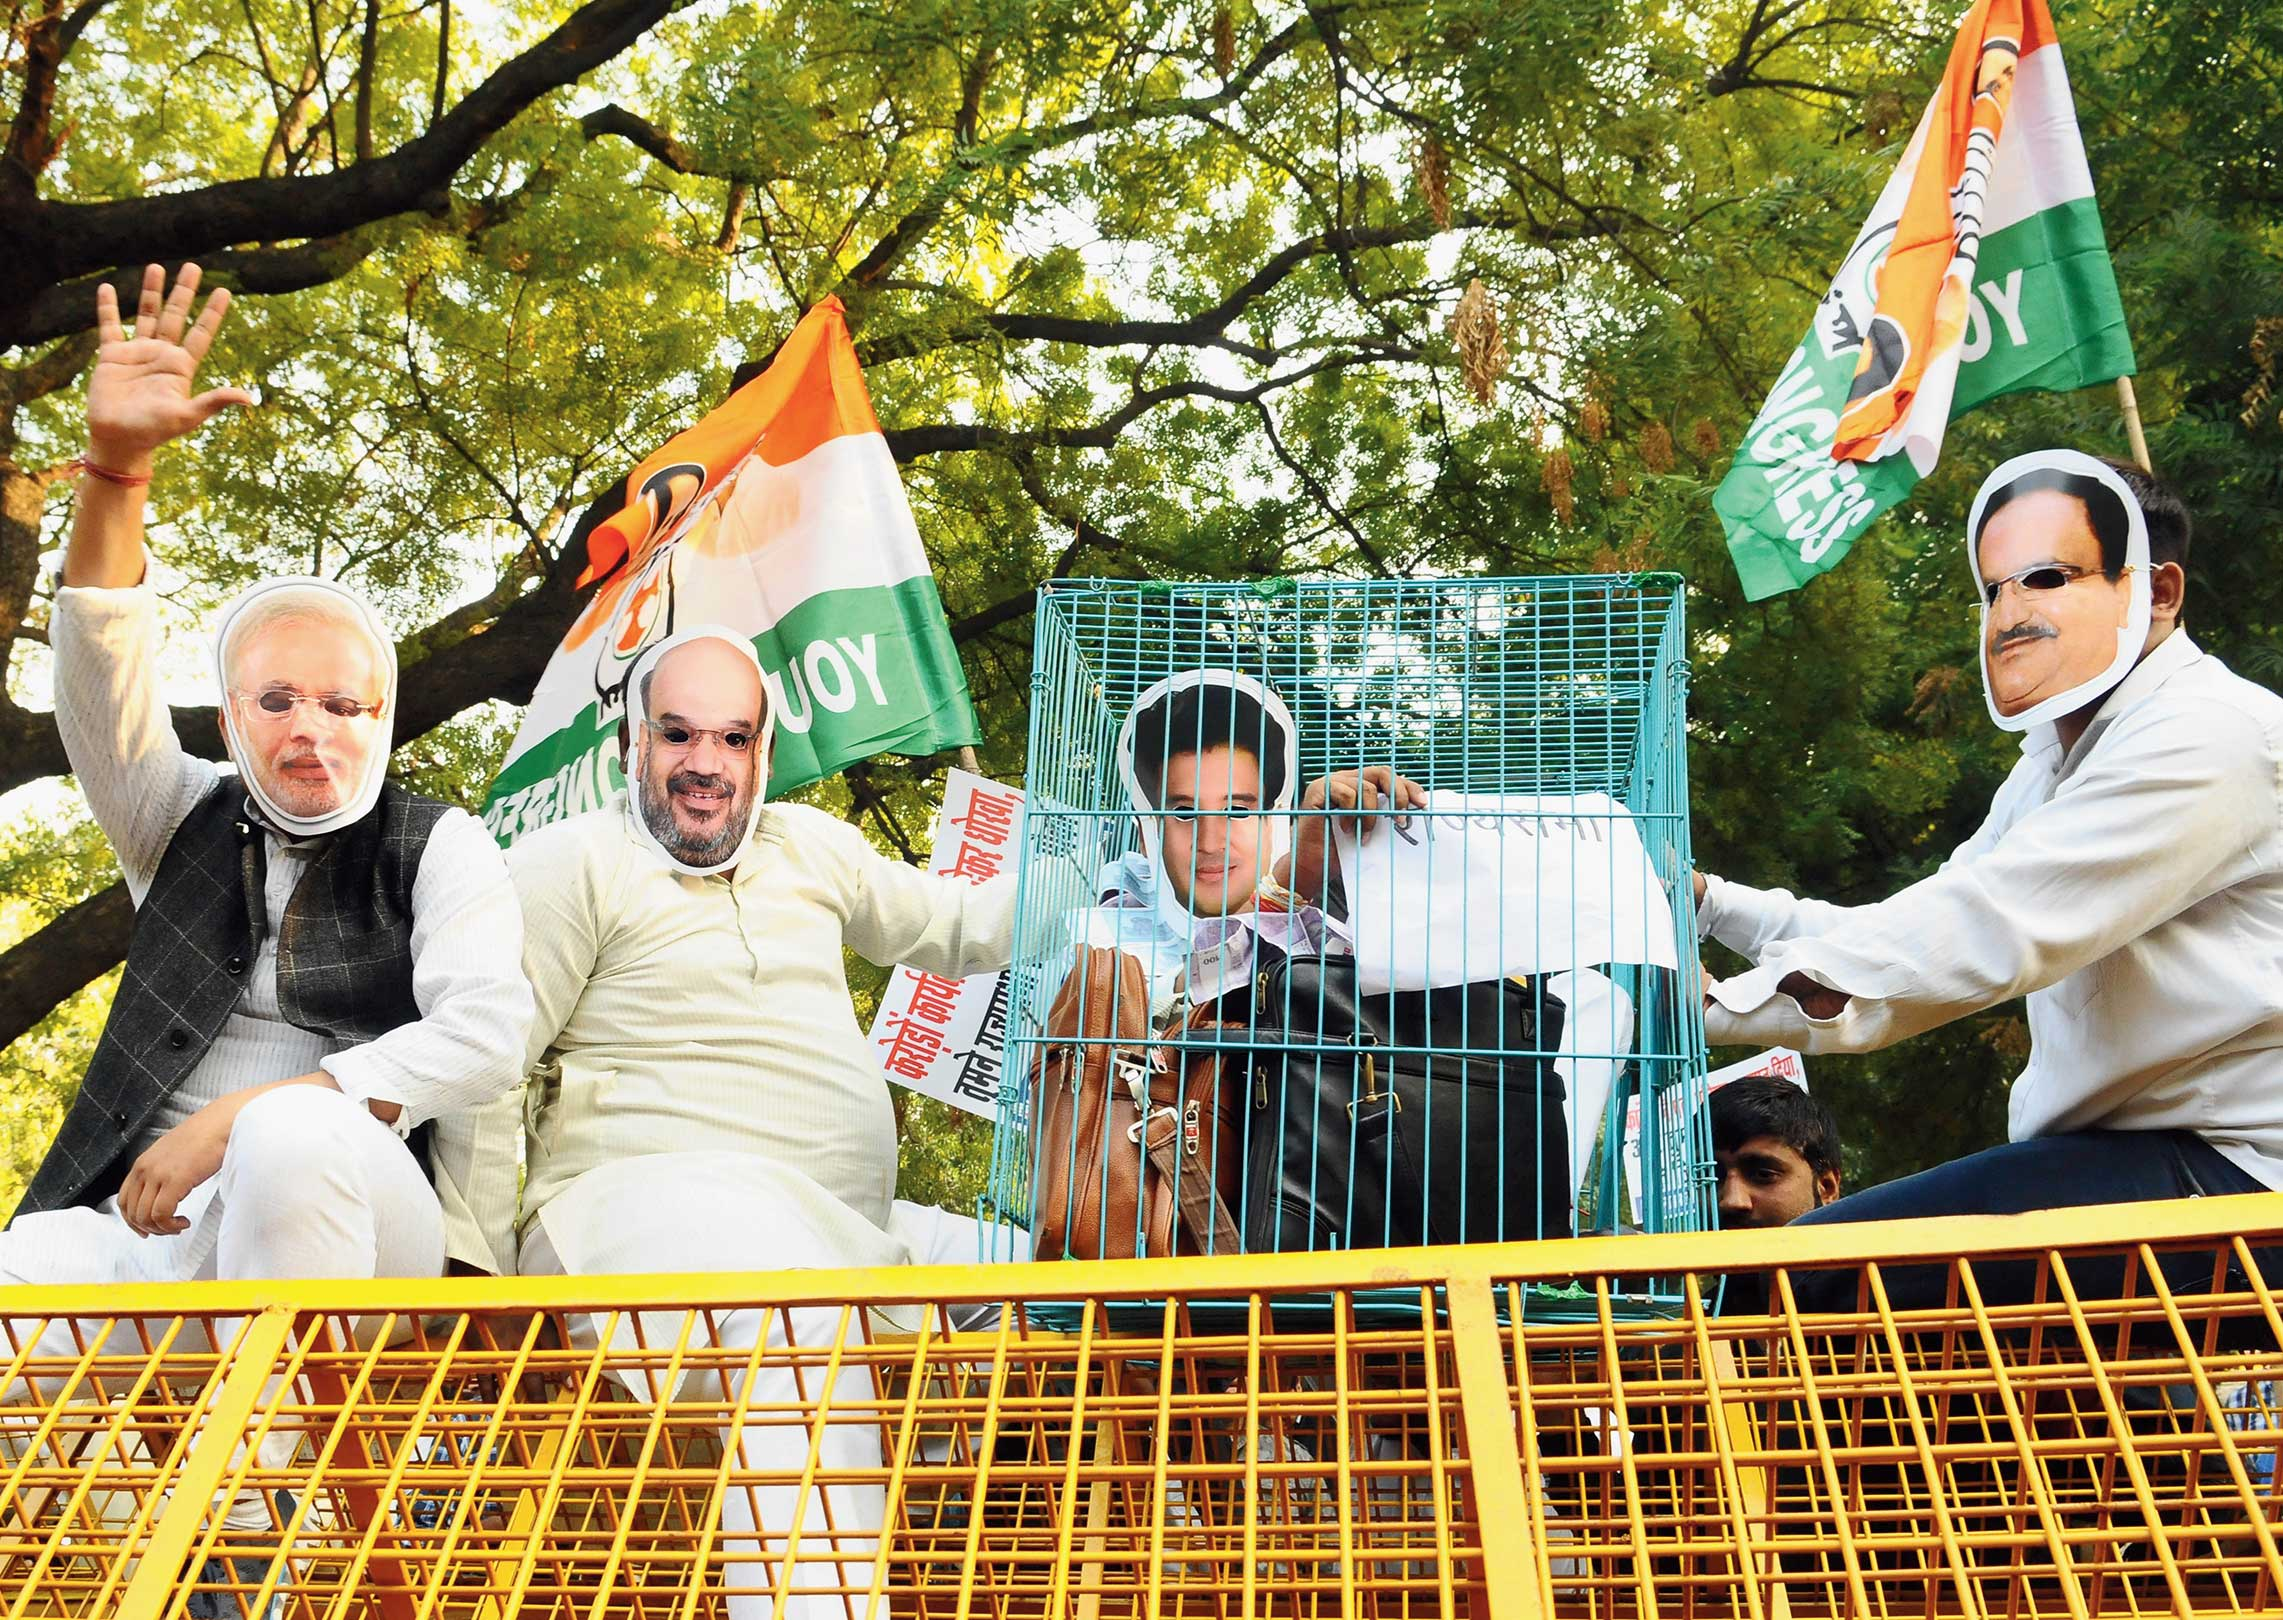 Youth Congress workers in masks protest alleged horse-trading by the BJP near Parliament on Wednesday. The protesters wear masks of Jyotiraditya Scindia, seen in a cage along with bags of money, and BJP leaders Narendra Modi, Amit Shah and JP Nadda.